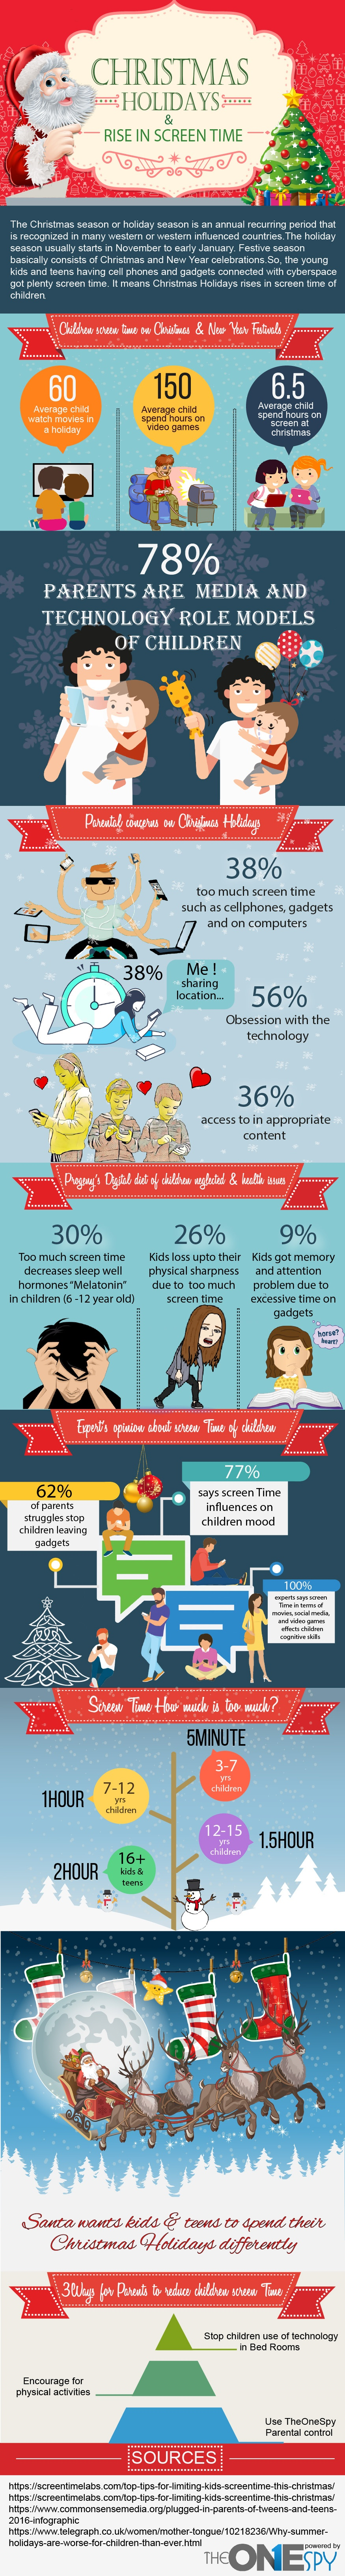 Christmas Holidays & Rise in Screen Time Infographic